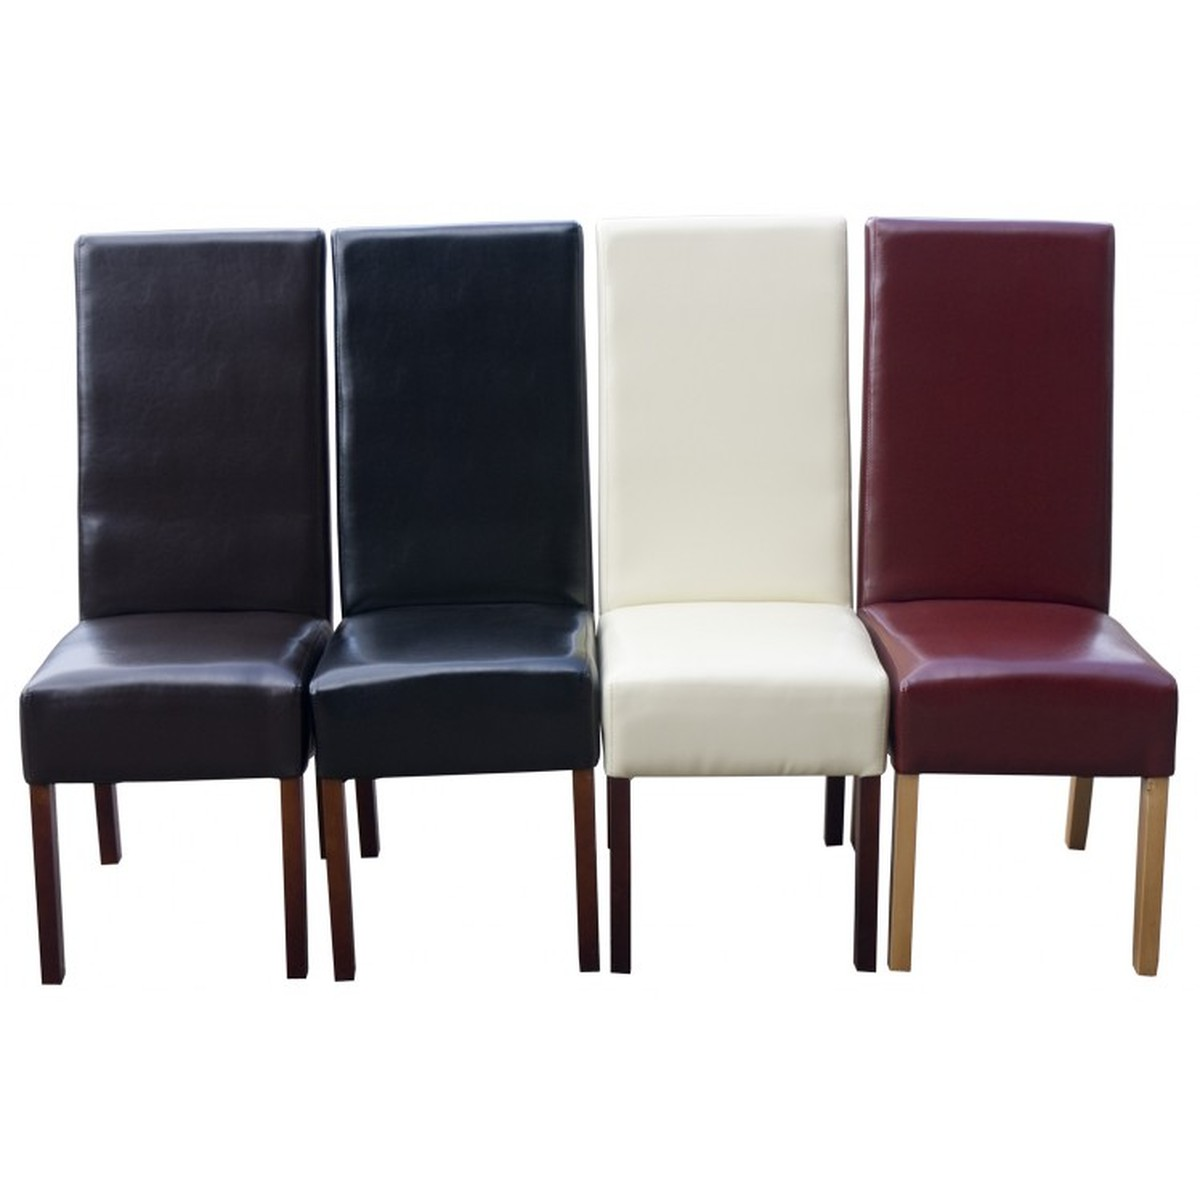 faux leather restaurant dining chairs. crib 5 rated commercial chairs for sale faux leather restaurant dining